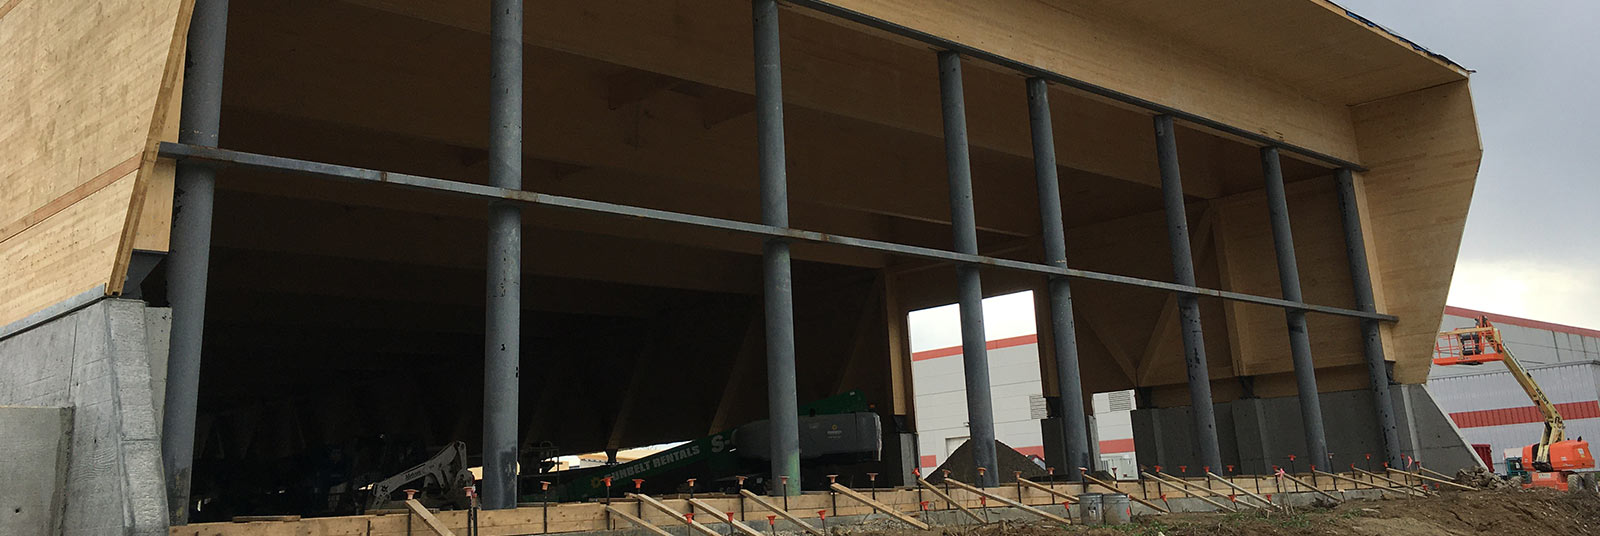 Beams to support the CLT and glulam structure at the Salvagnini addition in Hamilton, Ohio.